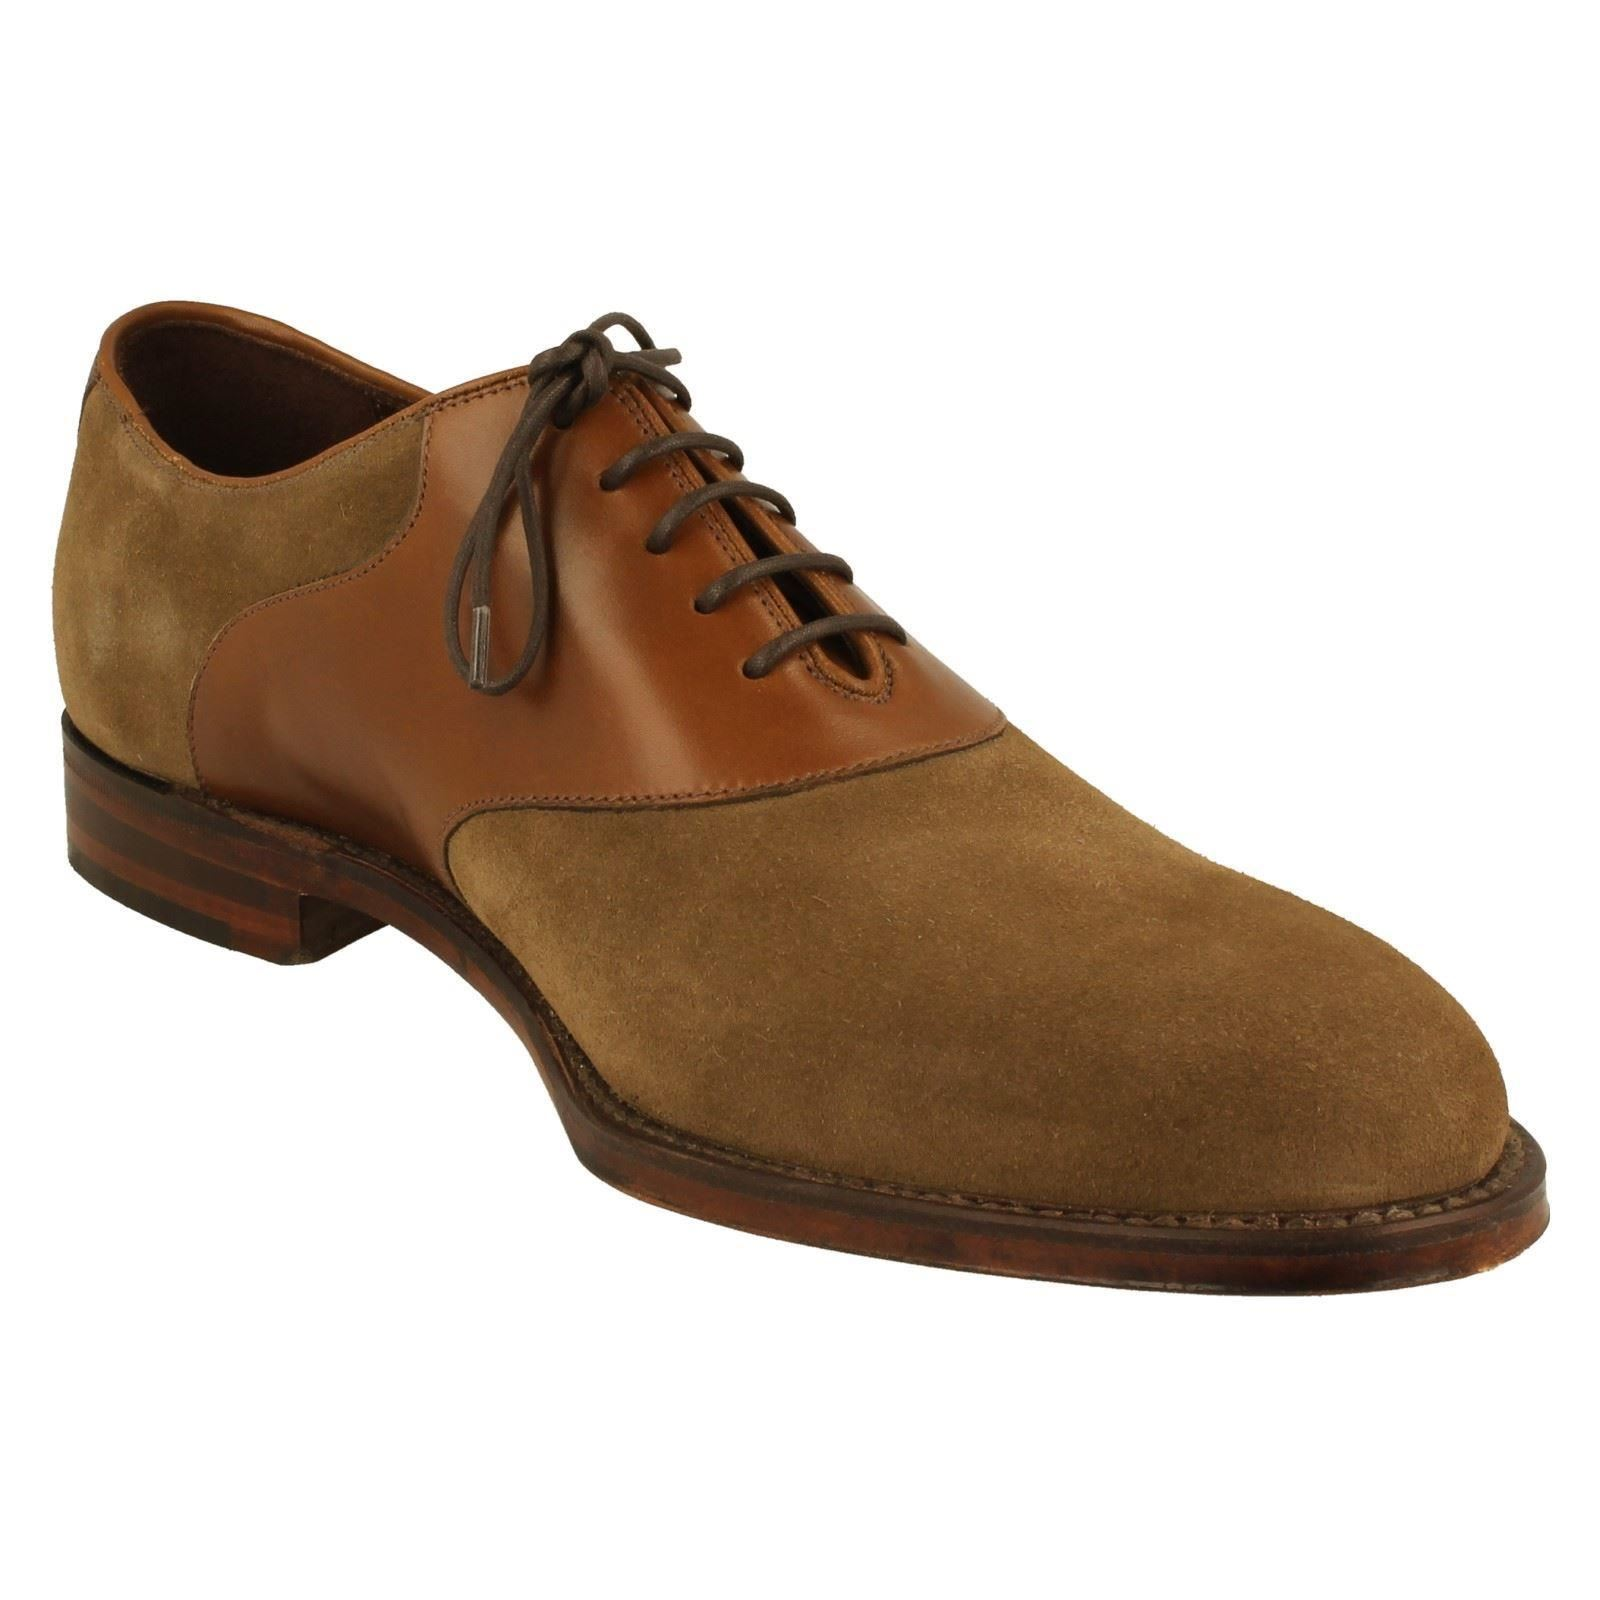 Herren Formal Lace-Up Loake Schuhes Loake Lace-Up Style Asquith-W d8021f